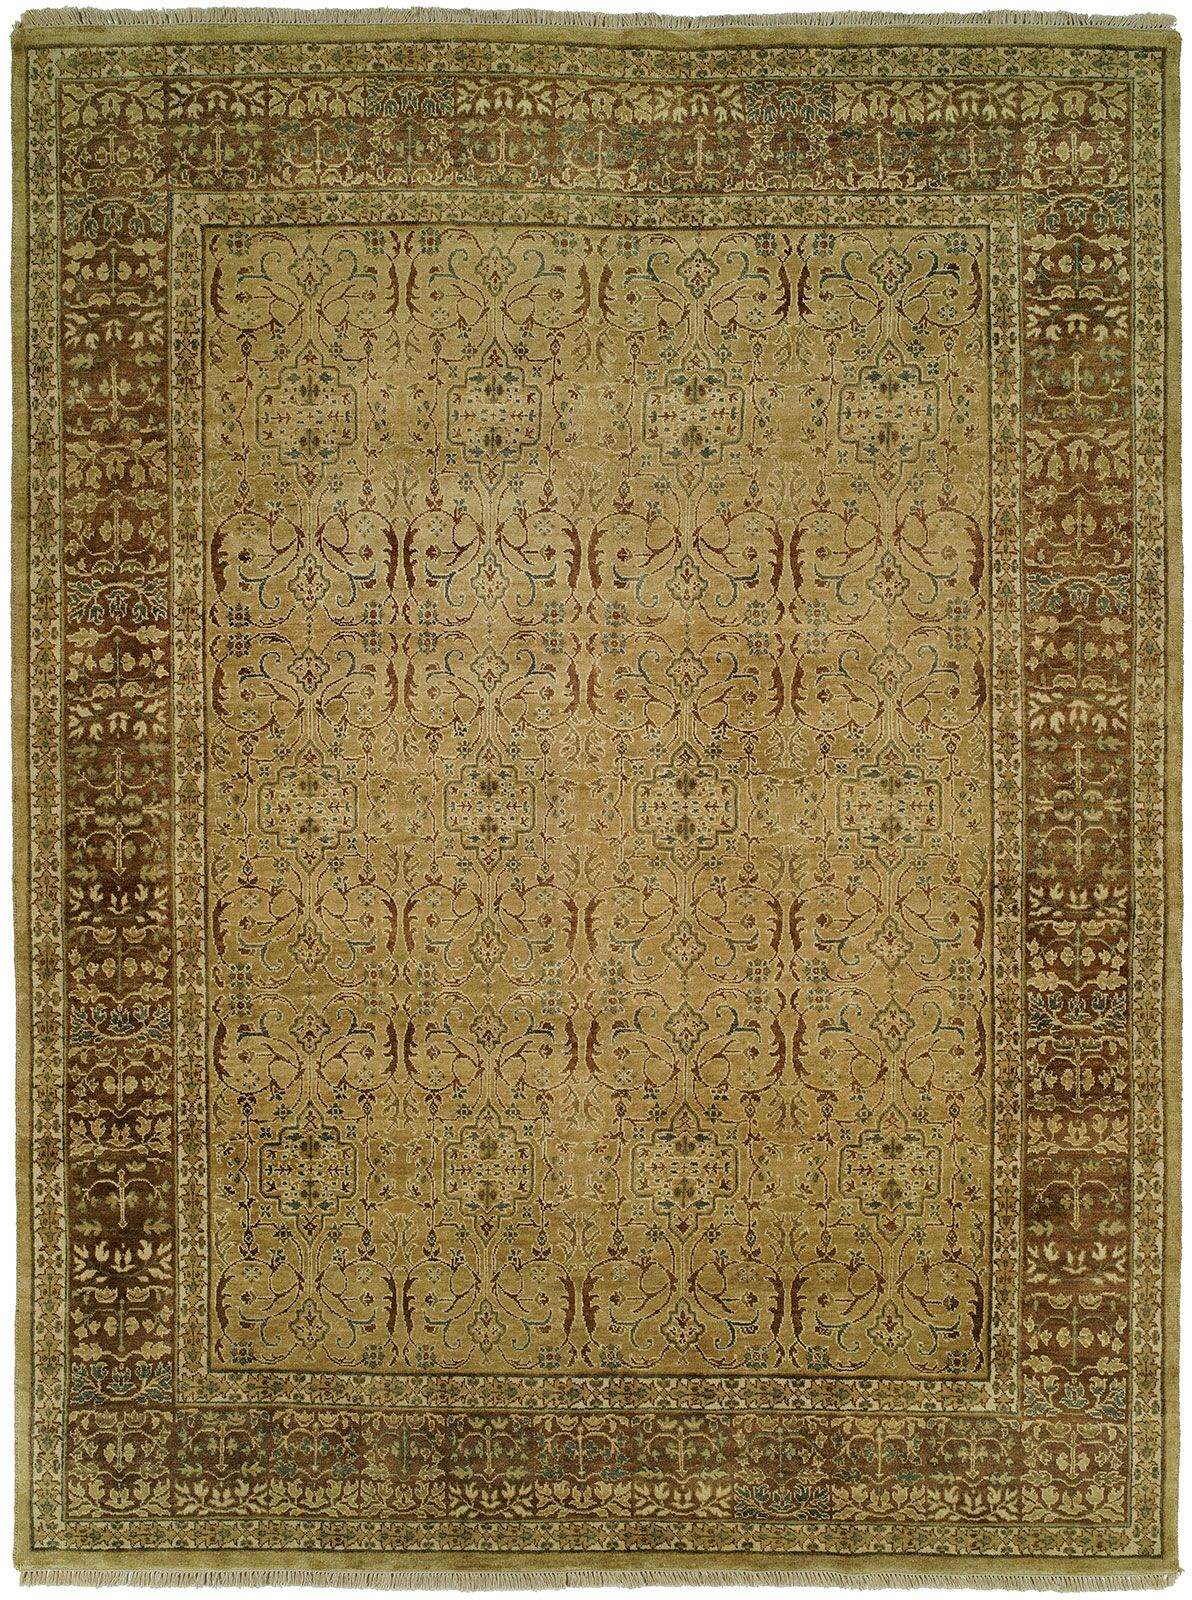 Mcmullin Hand Knotted Wool Tan/Brown Area Rug Rug Size: Rectangle 5' x 7'